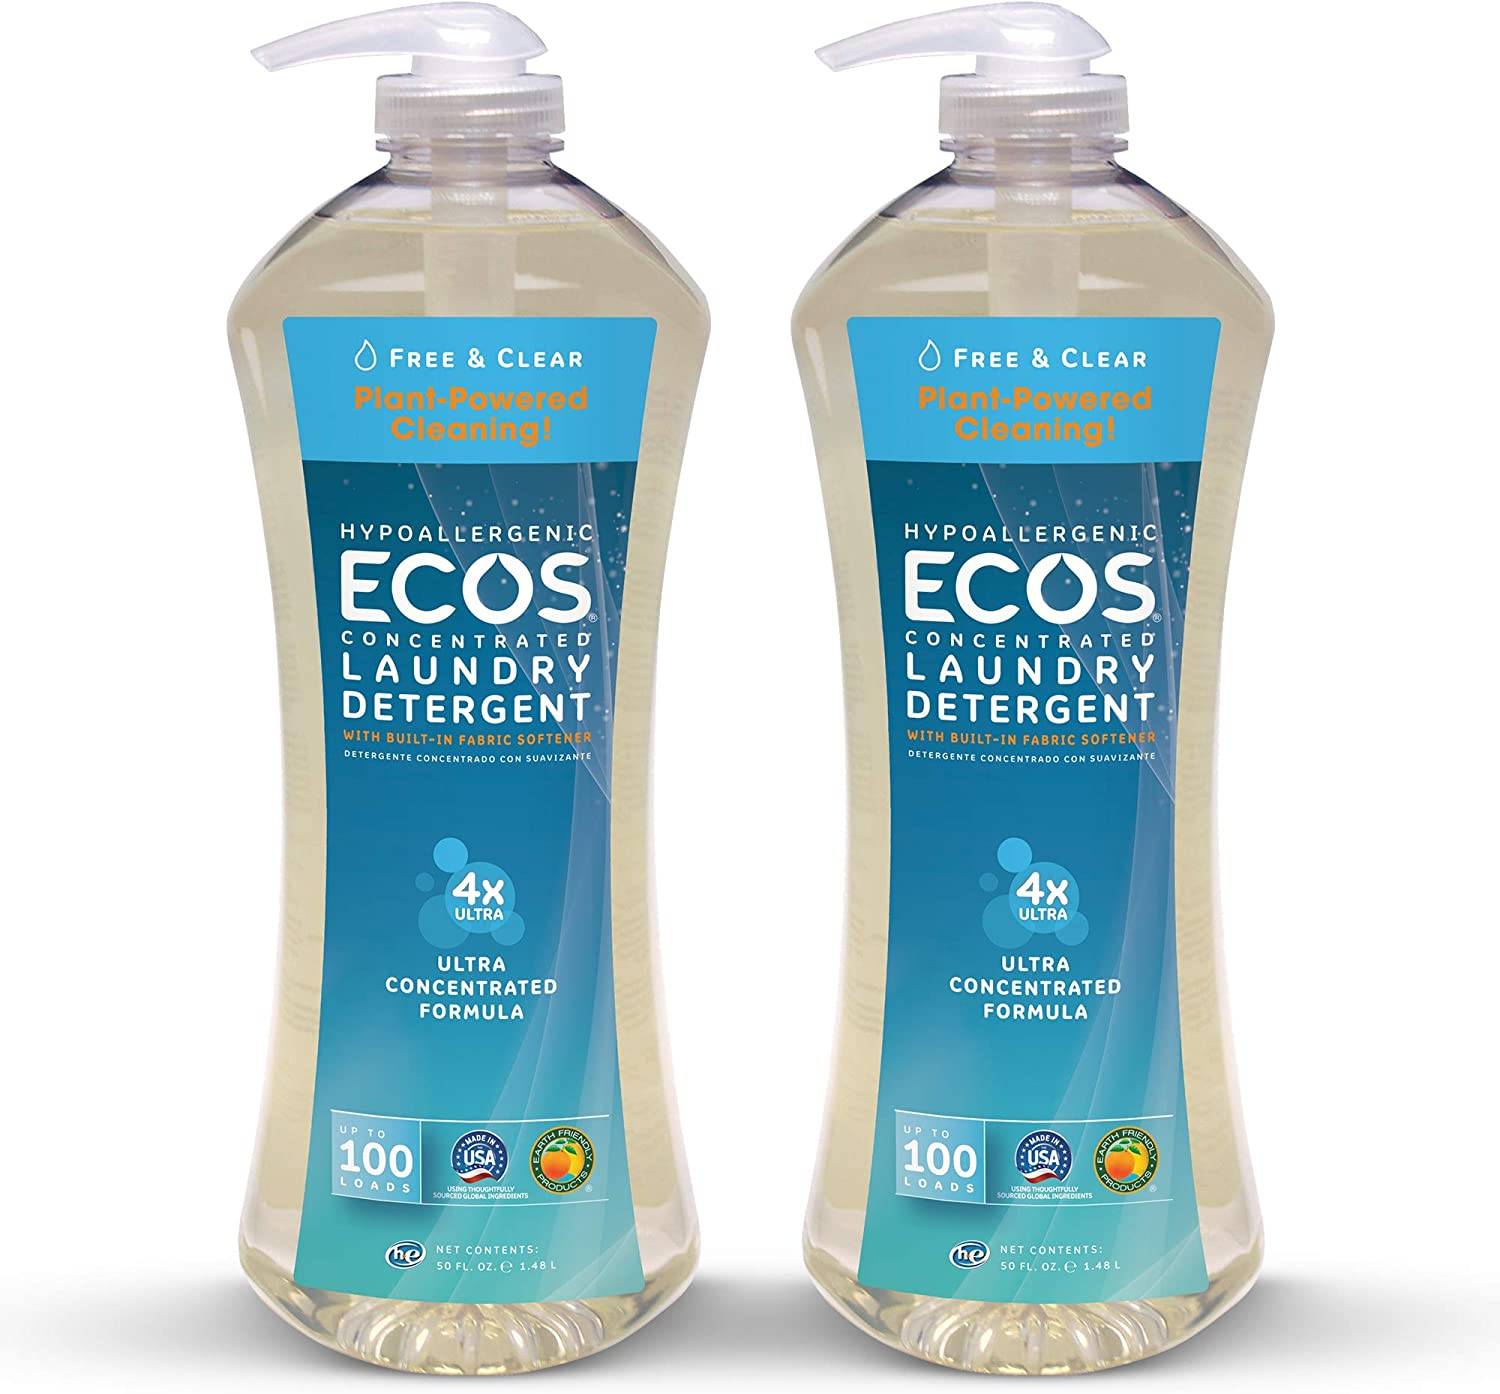 Earth Friendly Products Ecos 4X Ultra Concentrated Liquid Laundry Detergent, 200 Loads, 2 x 50 oz Free & Clear (2Count)